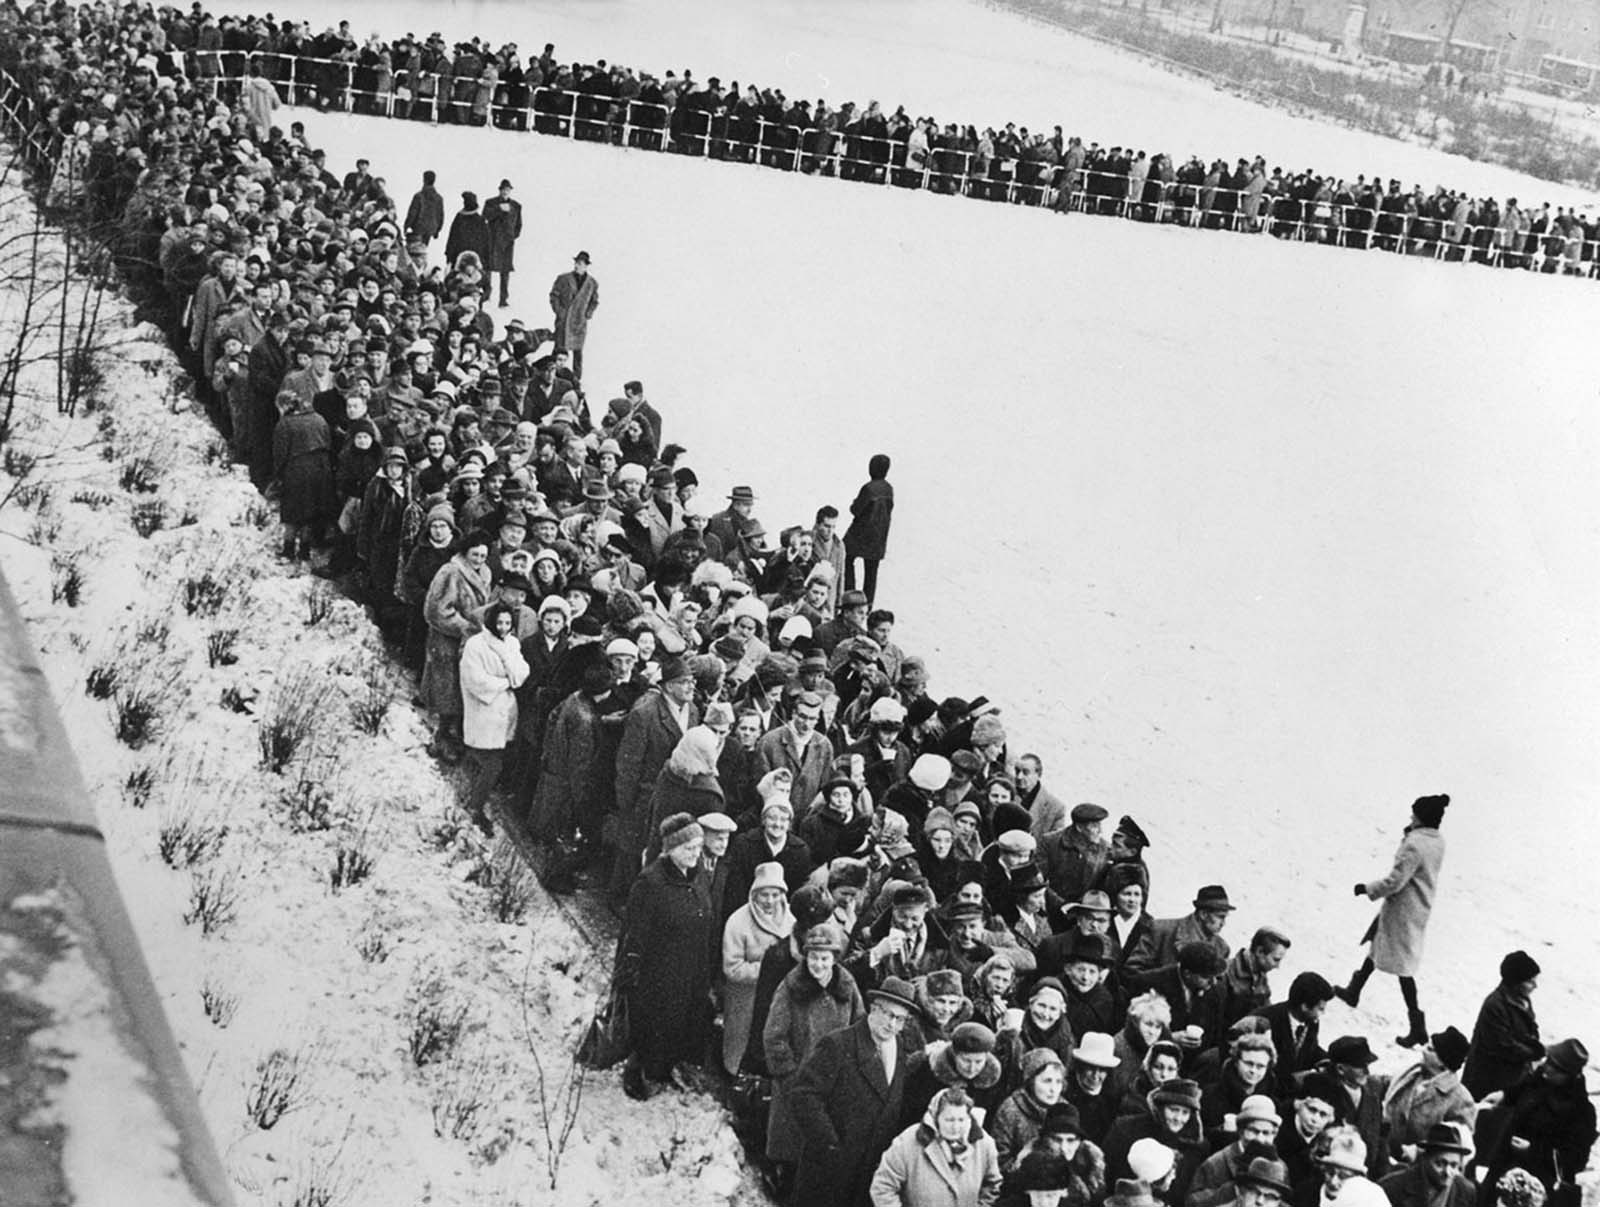 Thousands of people line up at the Schillerstrasse in Charlottenburg, Berlin, to apply for a passage slip to get across the border on December 19, 1963.